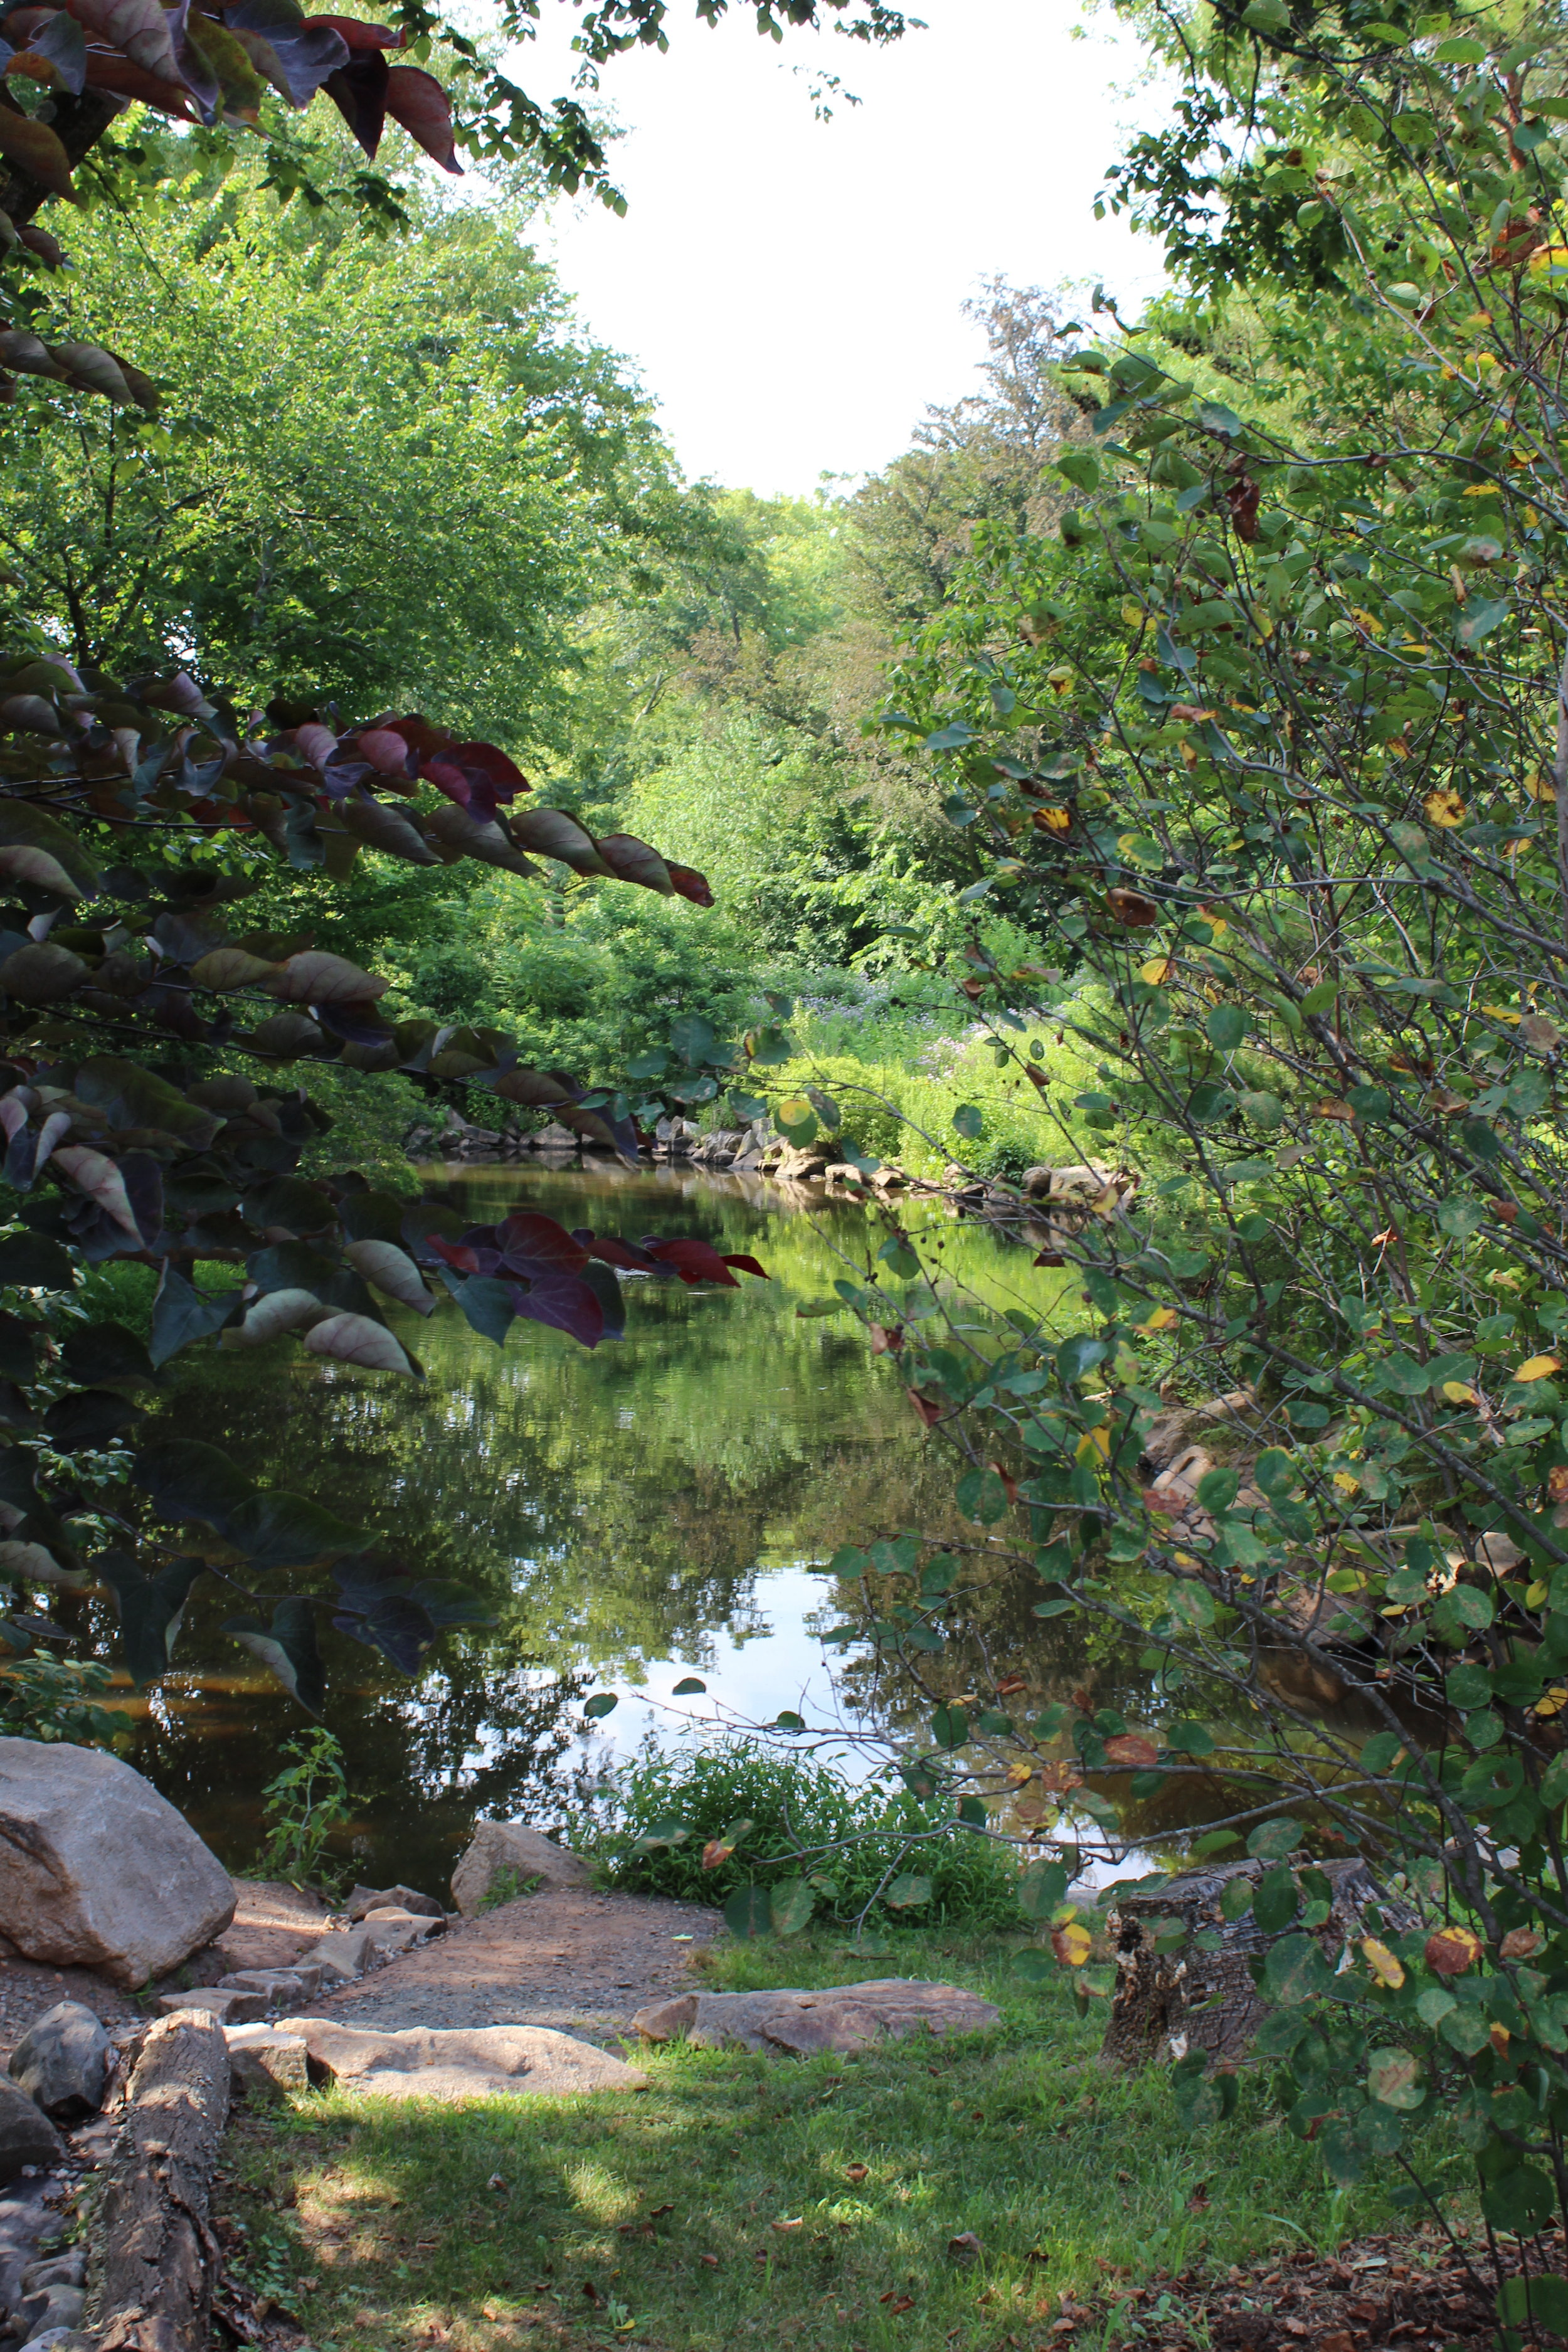 Wild and Wandering at New Jersey's Duke Farms